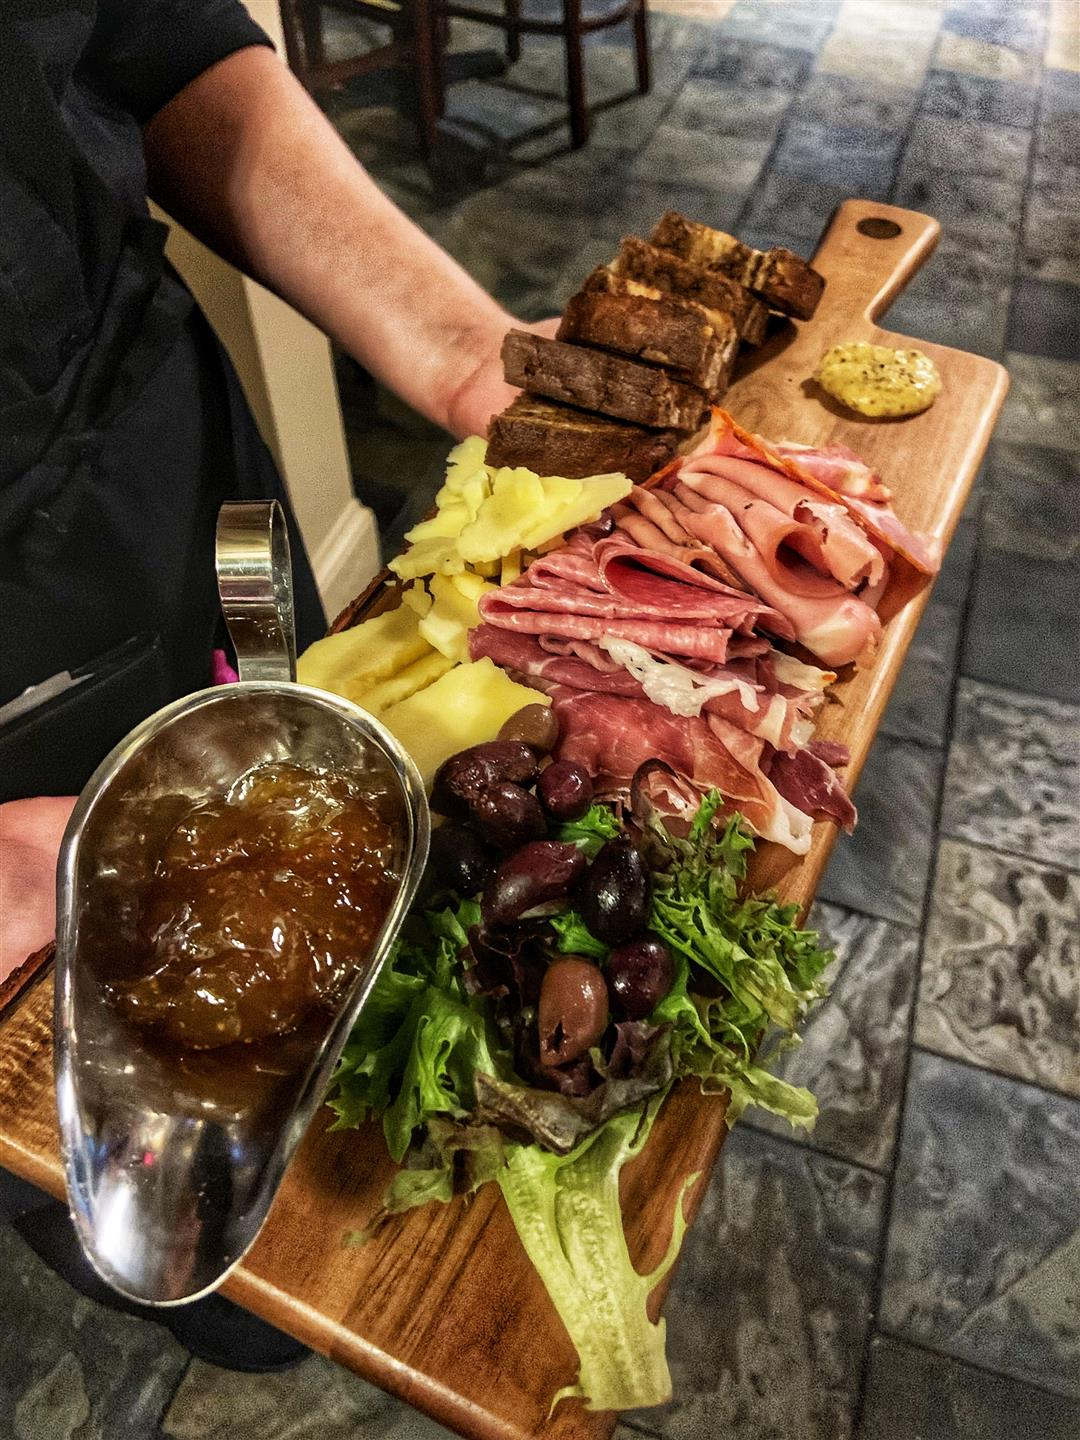 chartcuterie board with meats, cheeses, and olives on wooden board